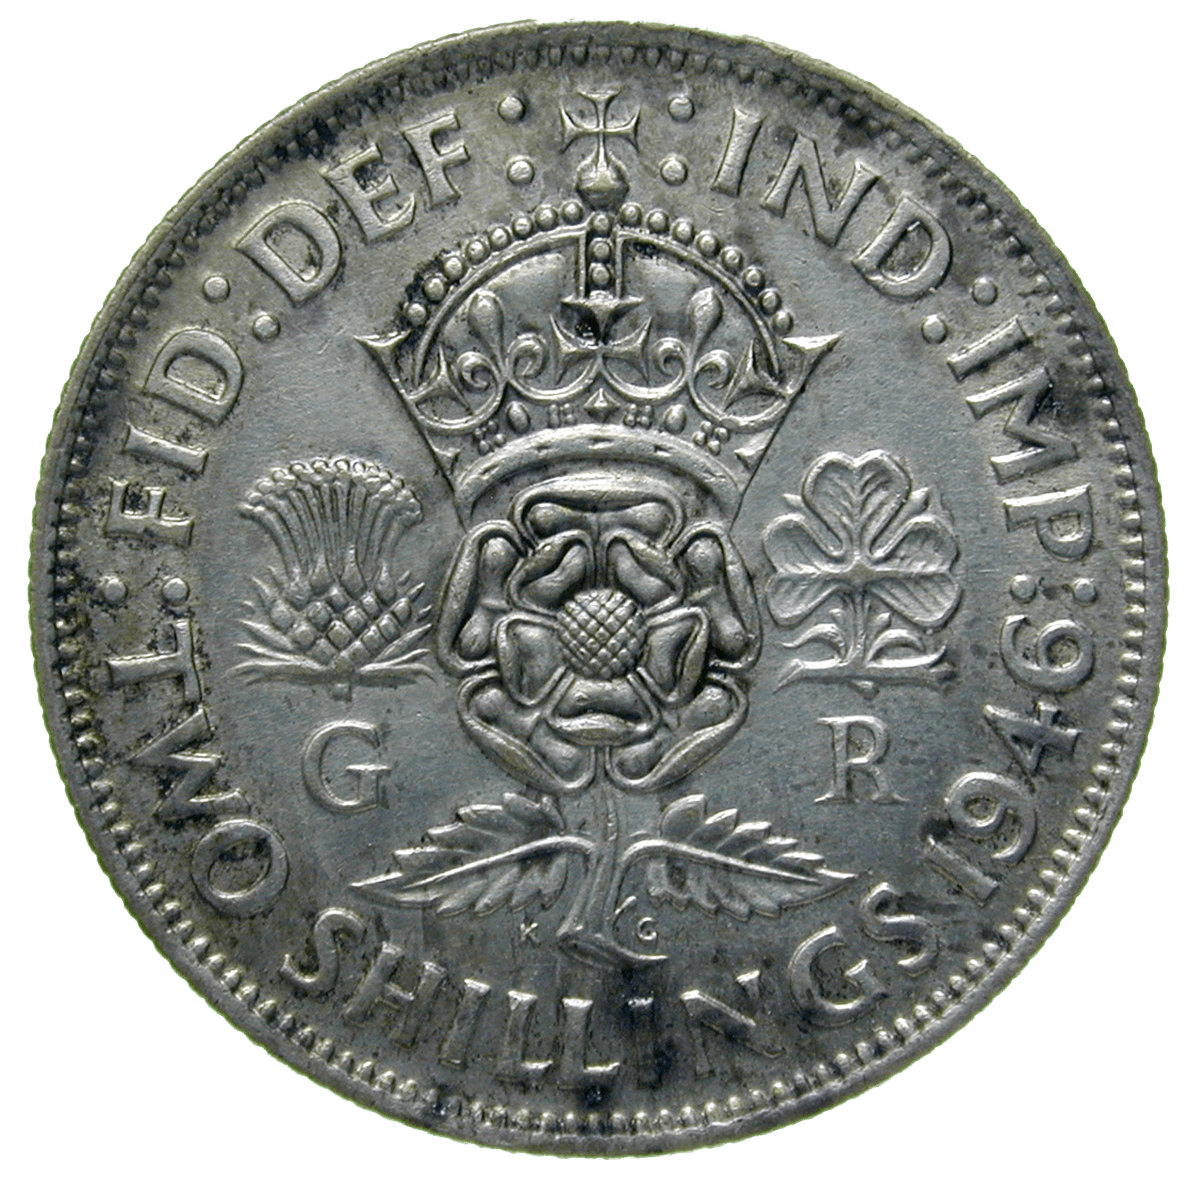 United Kingdom of Great Britain, George VI, Florin 1946 (reverse)